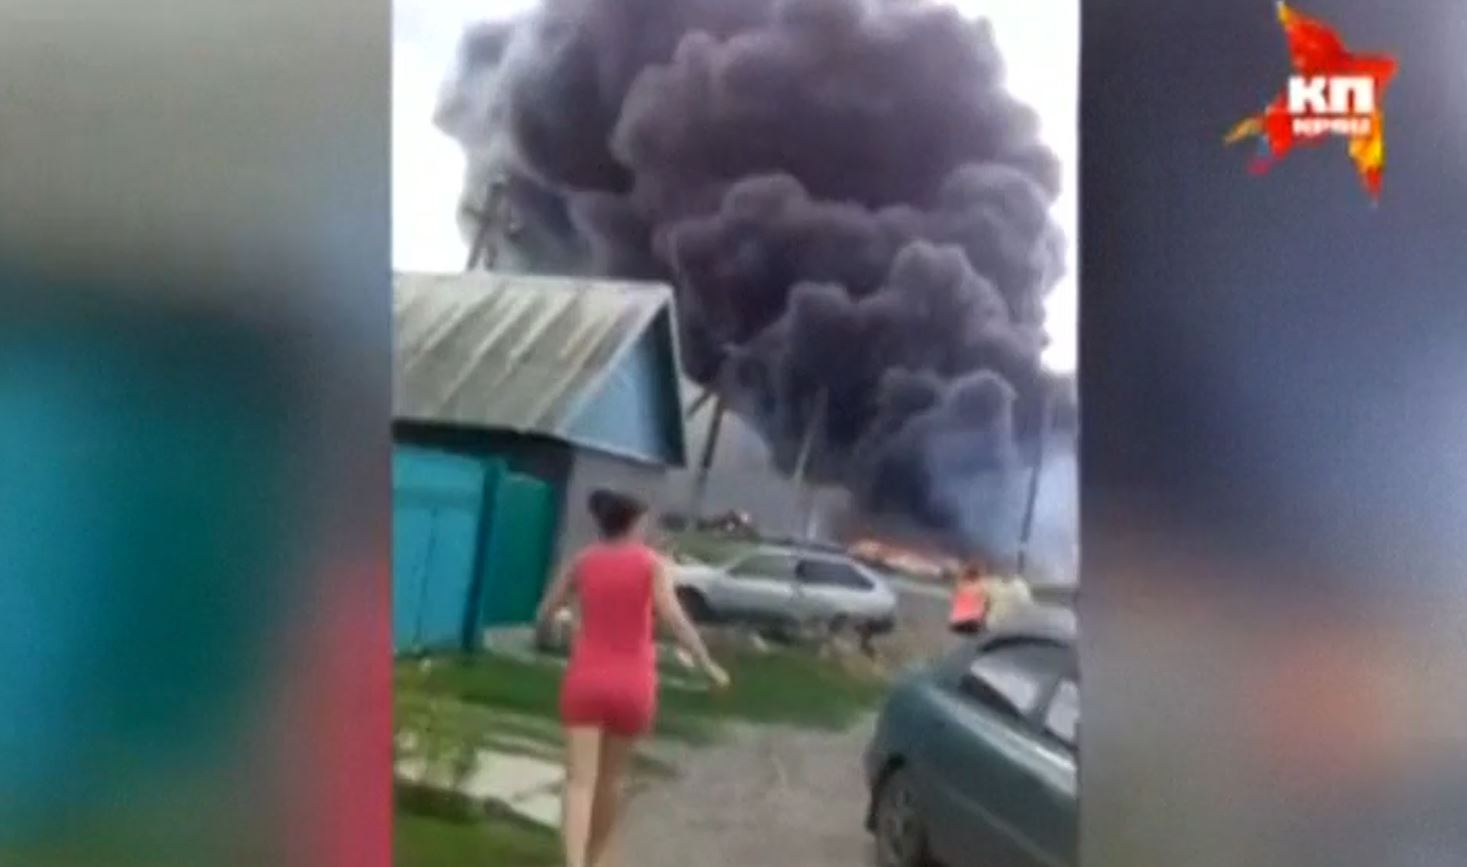 New Amateur Video Shows Aftermath of Malaysia Airlines ...